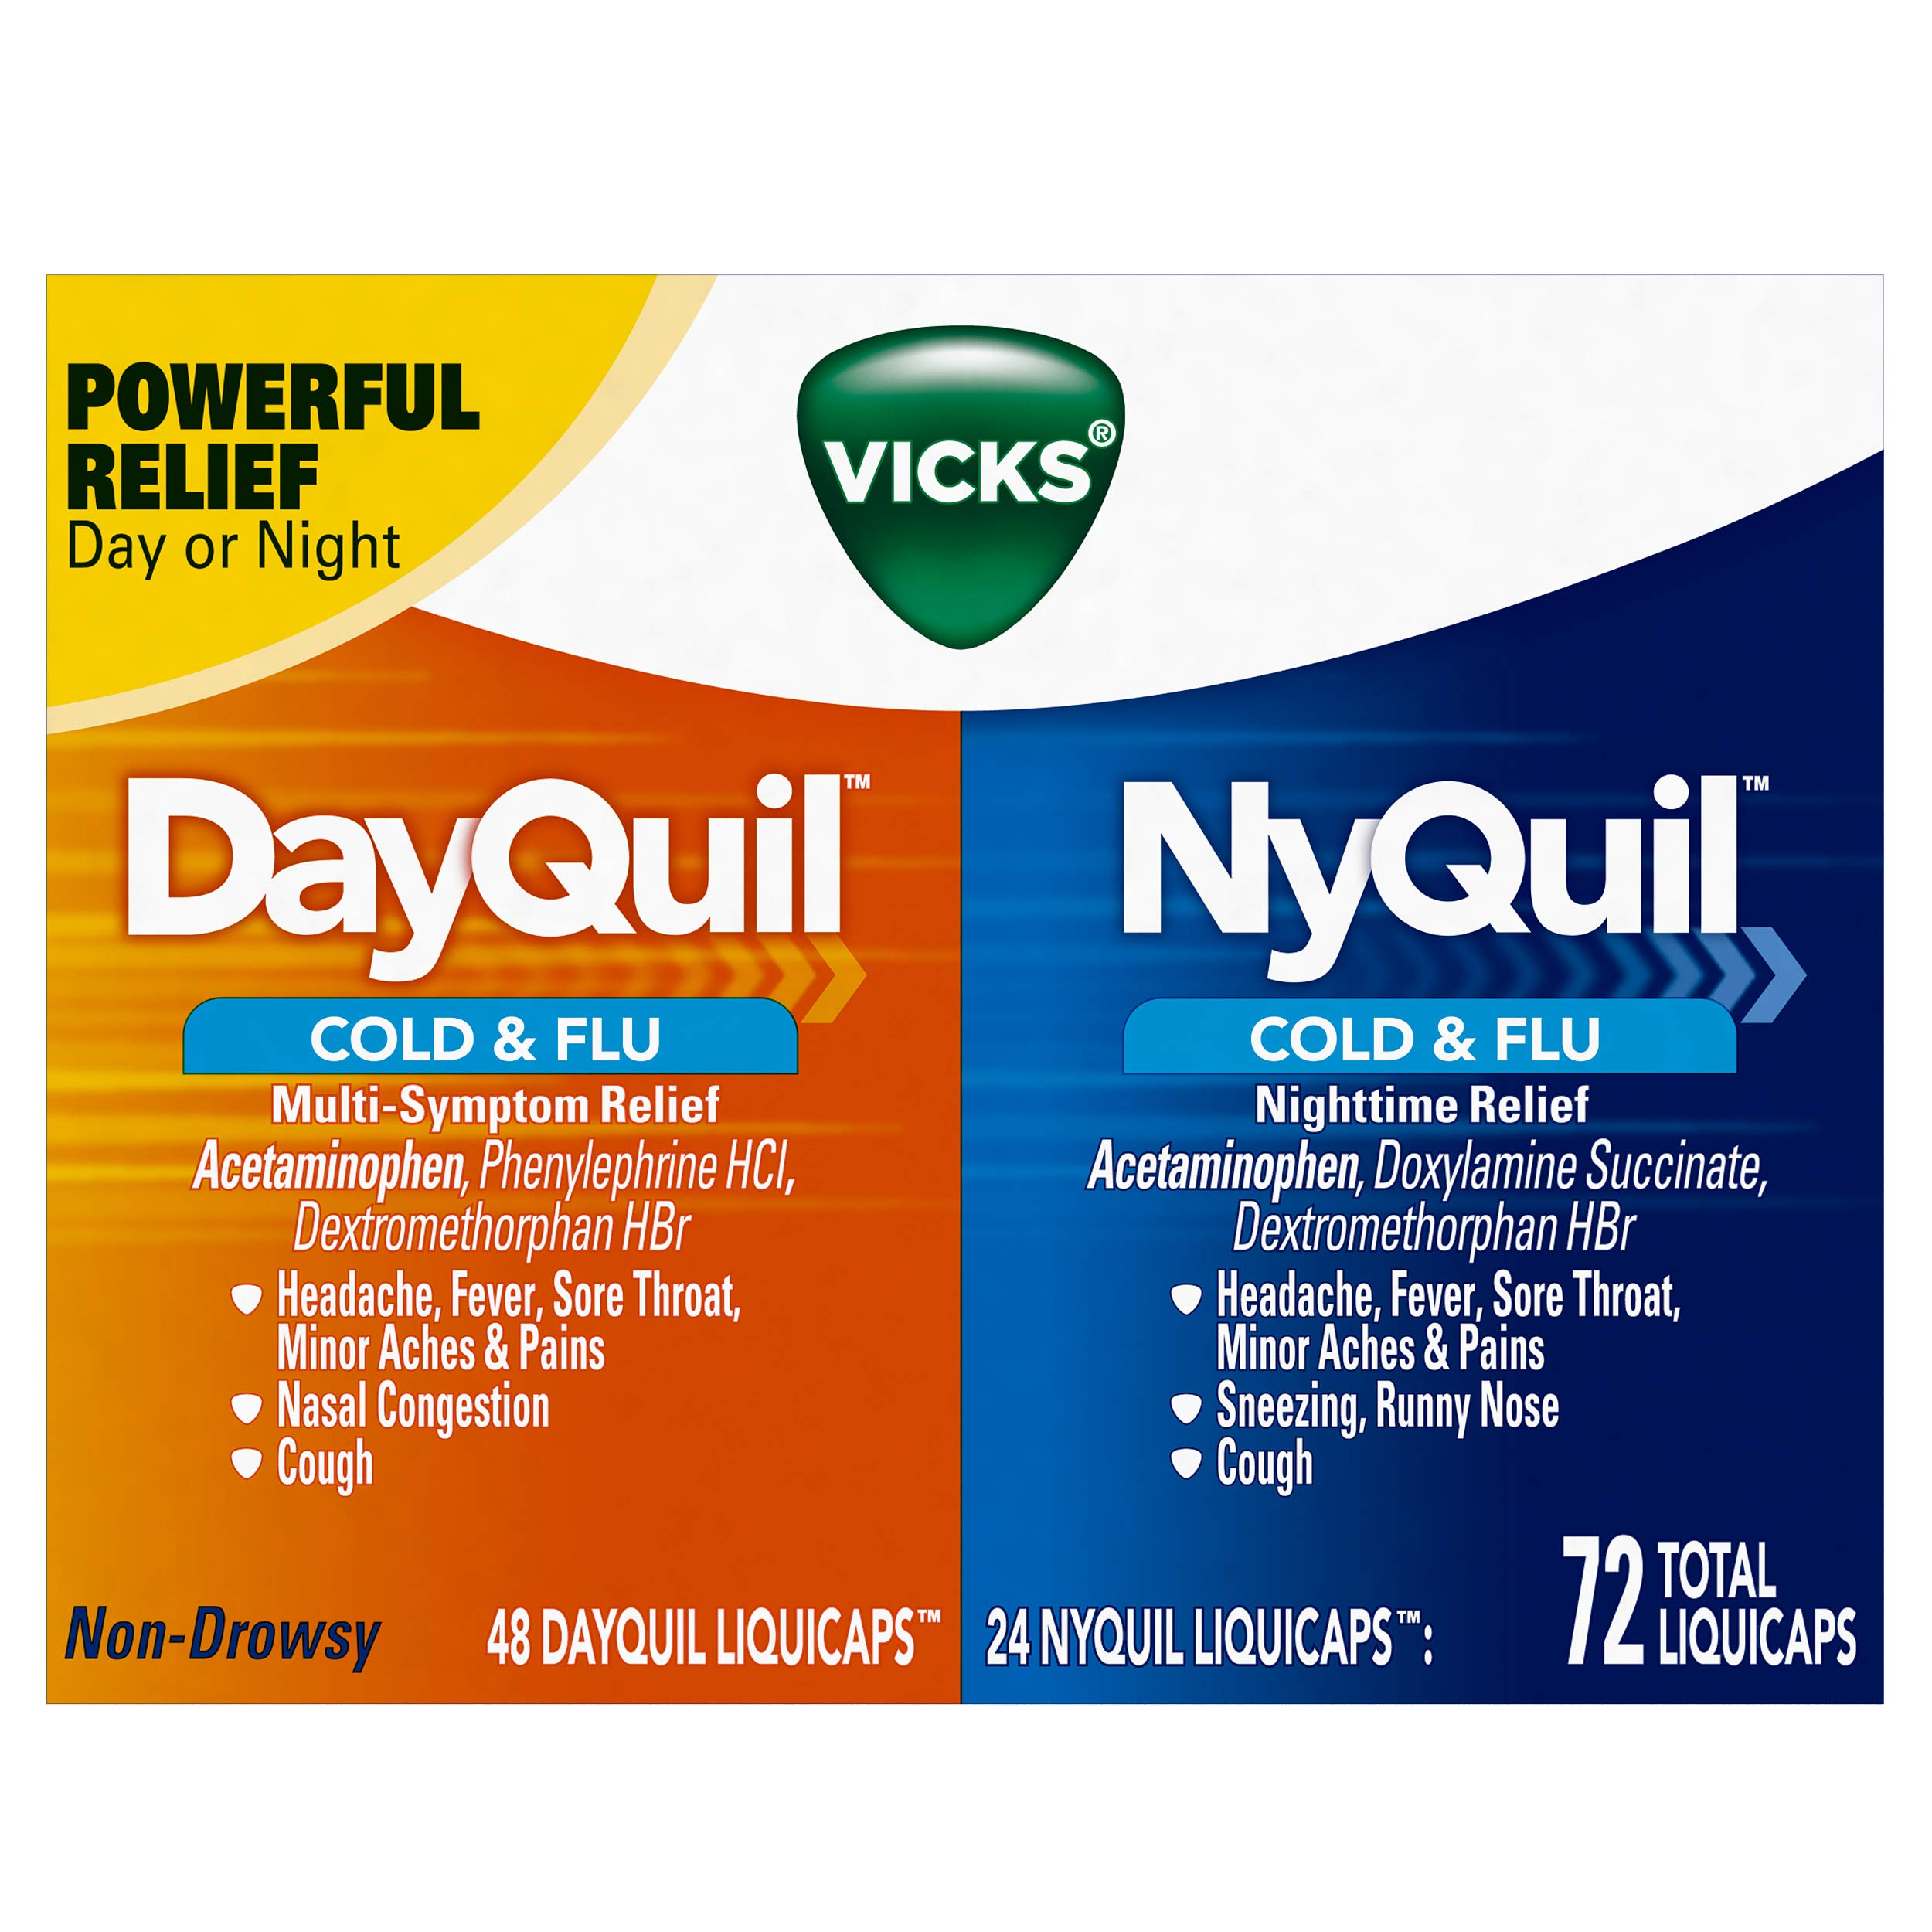 Vicks Dayquil & Nyquil Cough, Cold & Flu Relief Combo,liquicaps,  72 Count (48 Dayquil, 24 Nyquil) - Relieves Sore Throat, Fever, & Congestion by Vicks